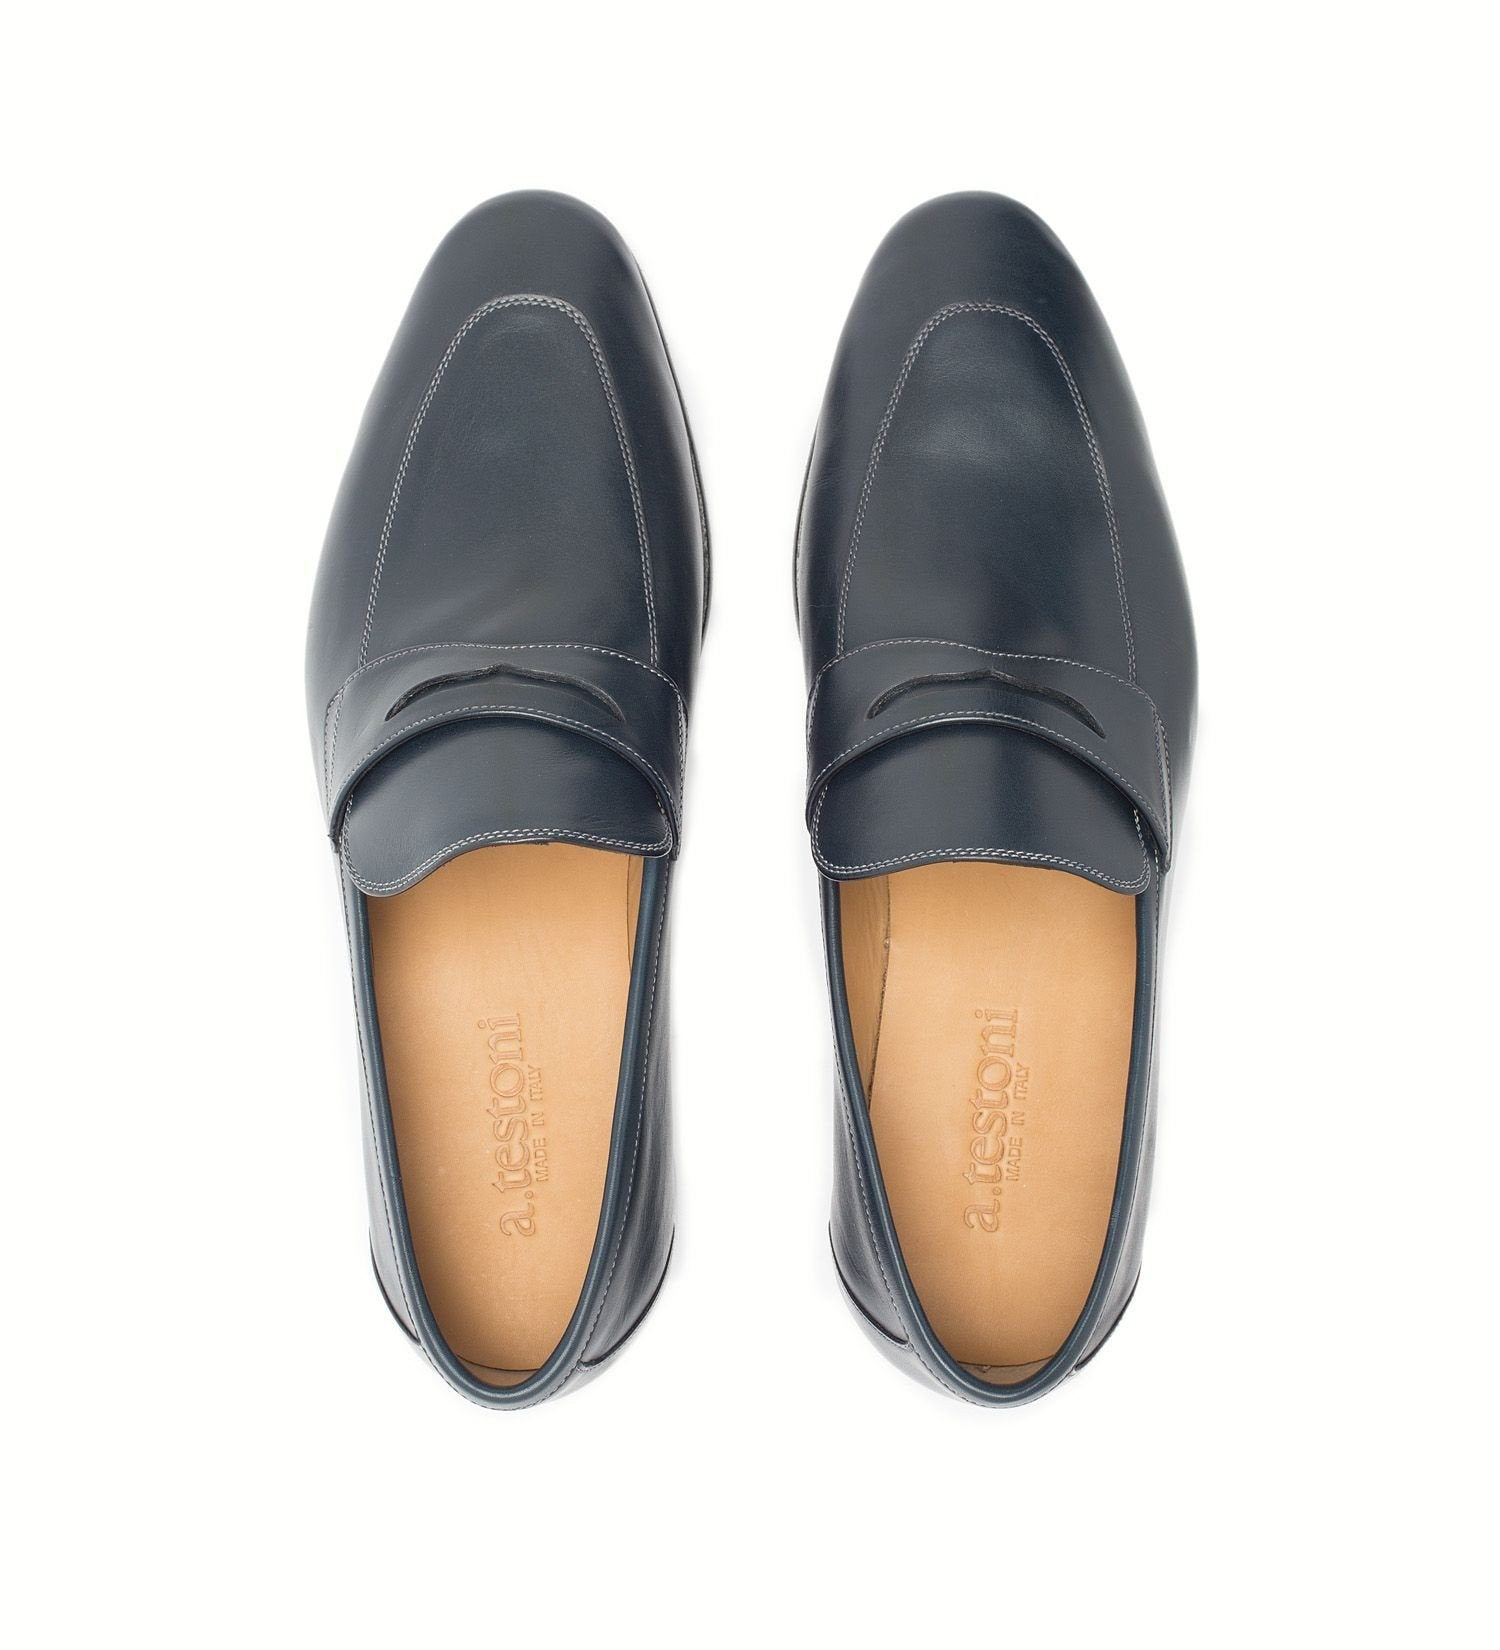 EXTRA-FLEXIBLE SLIP-ON,SHOES,A.TESTONI, | GentRow.com